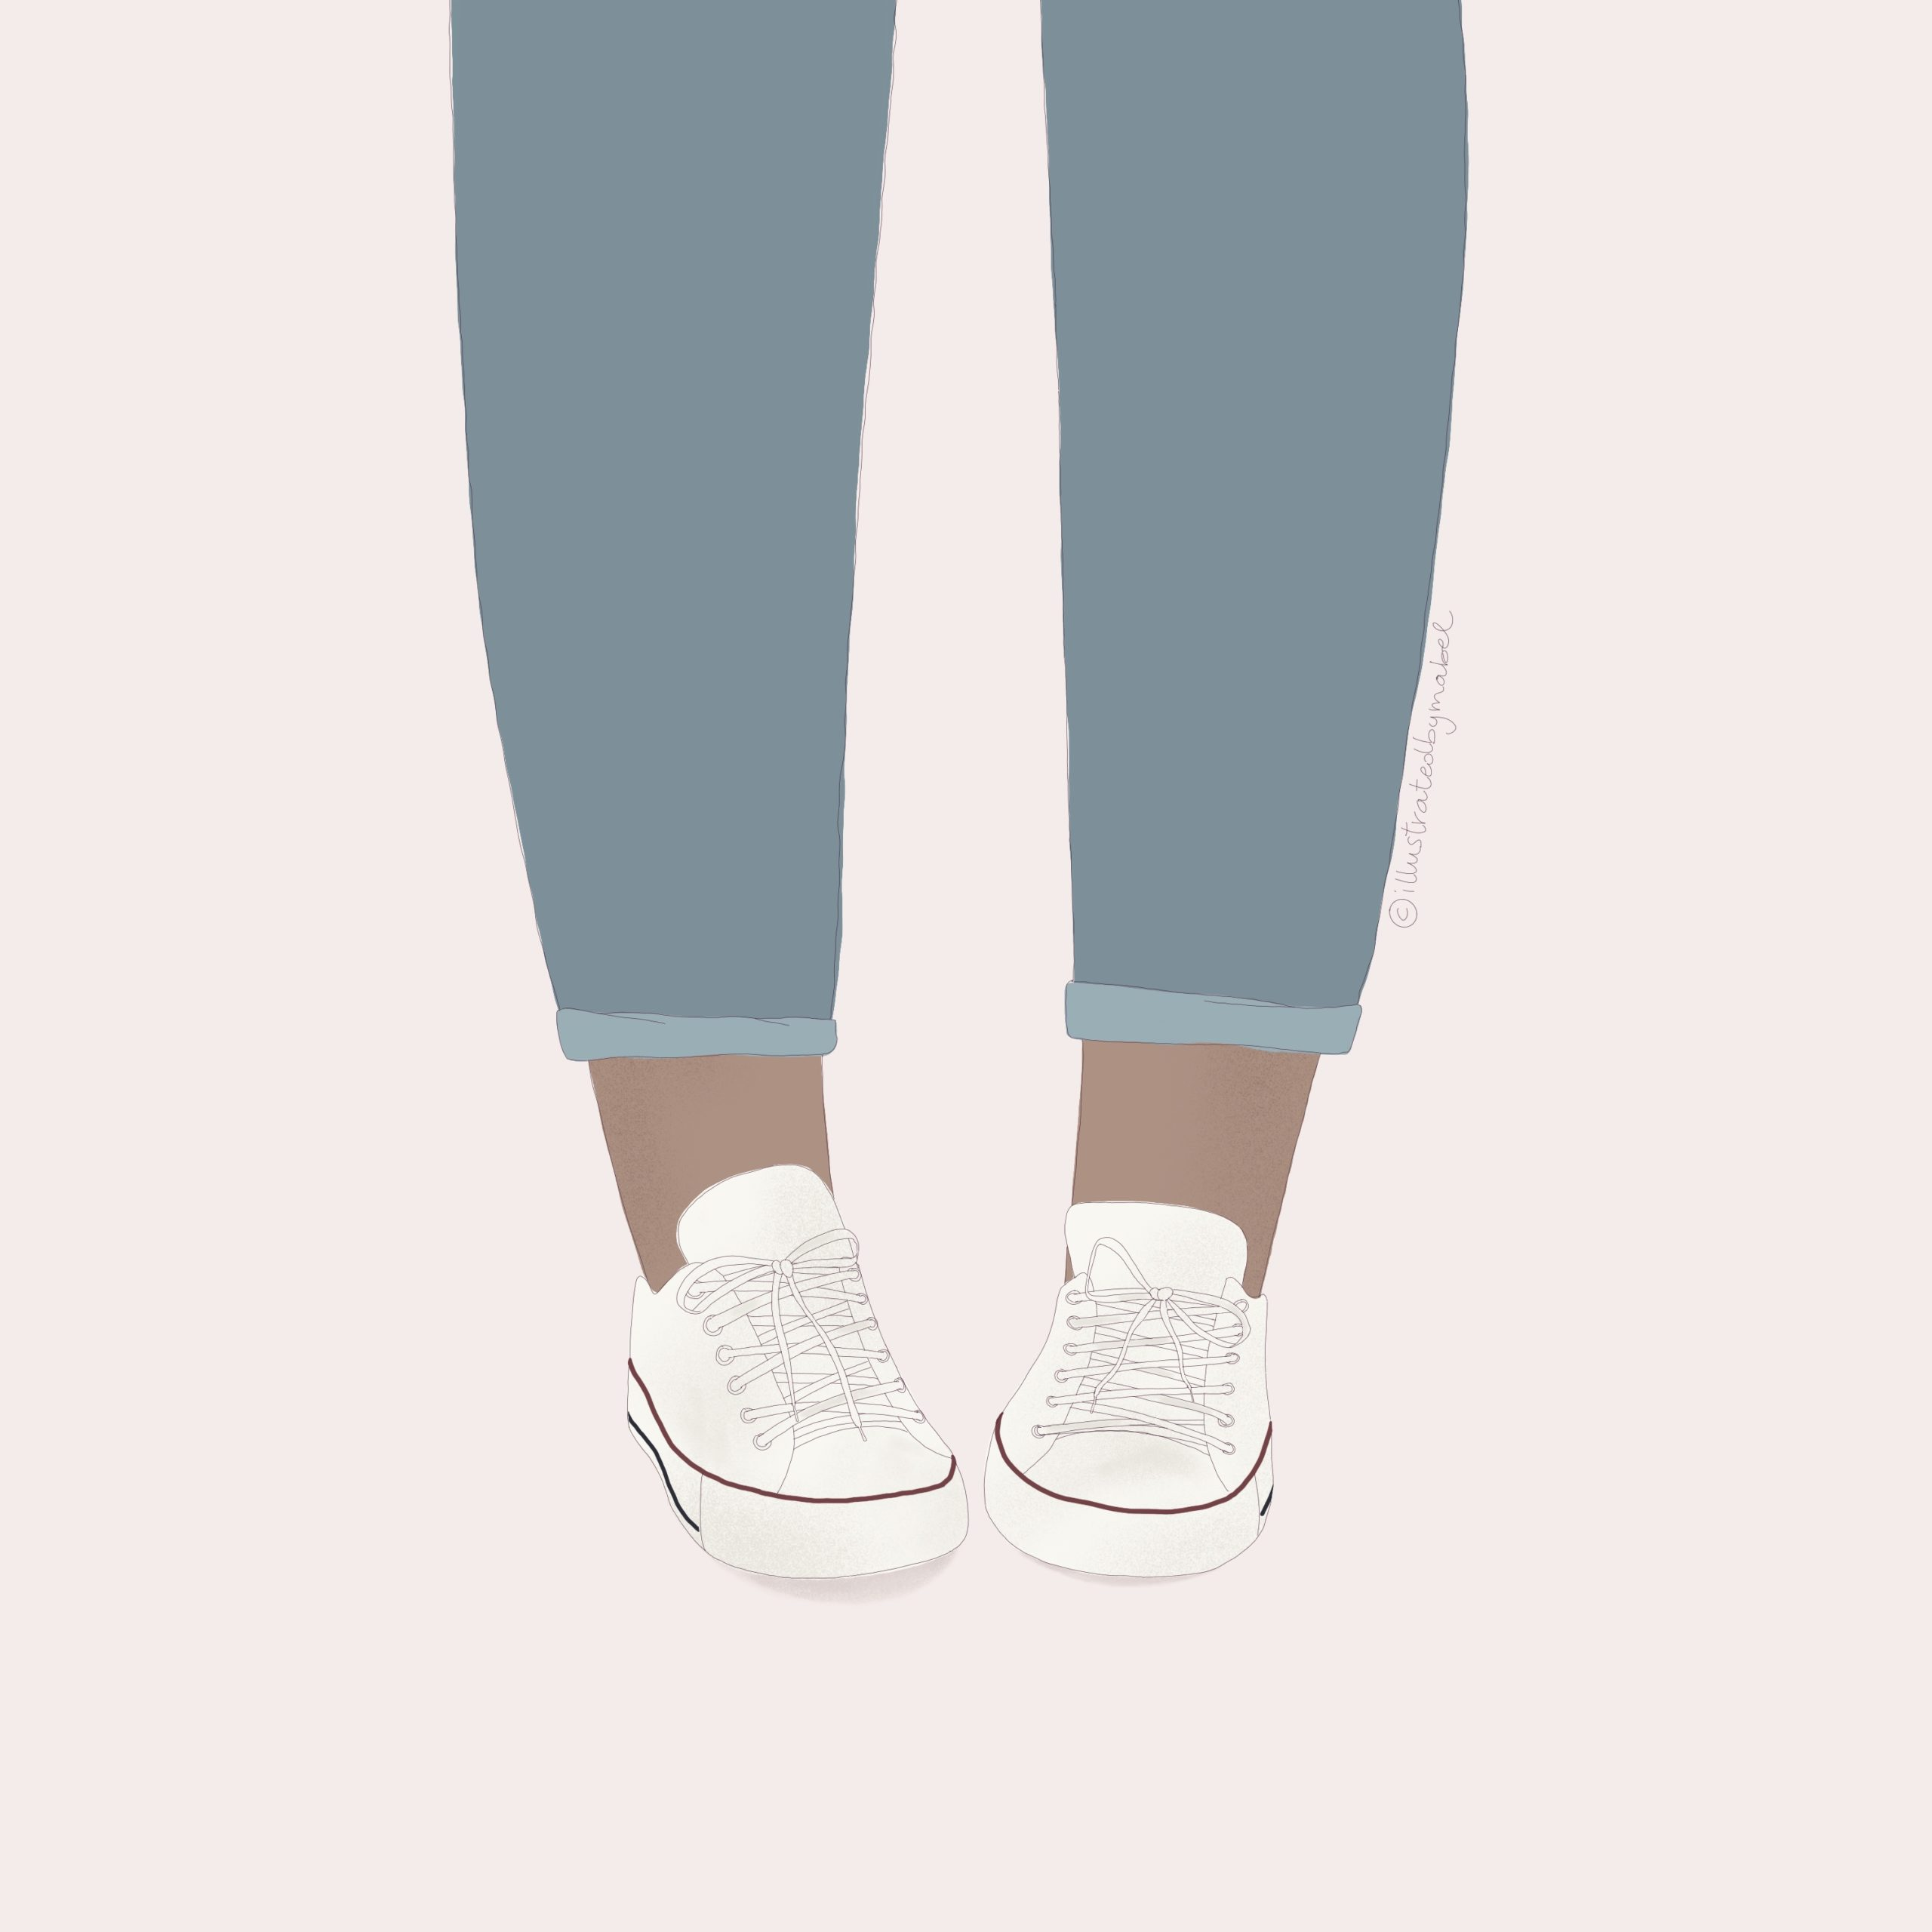 Custom illustration services. Girl wearing jeans and converse shoes.